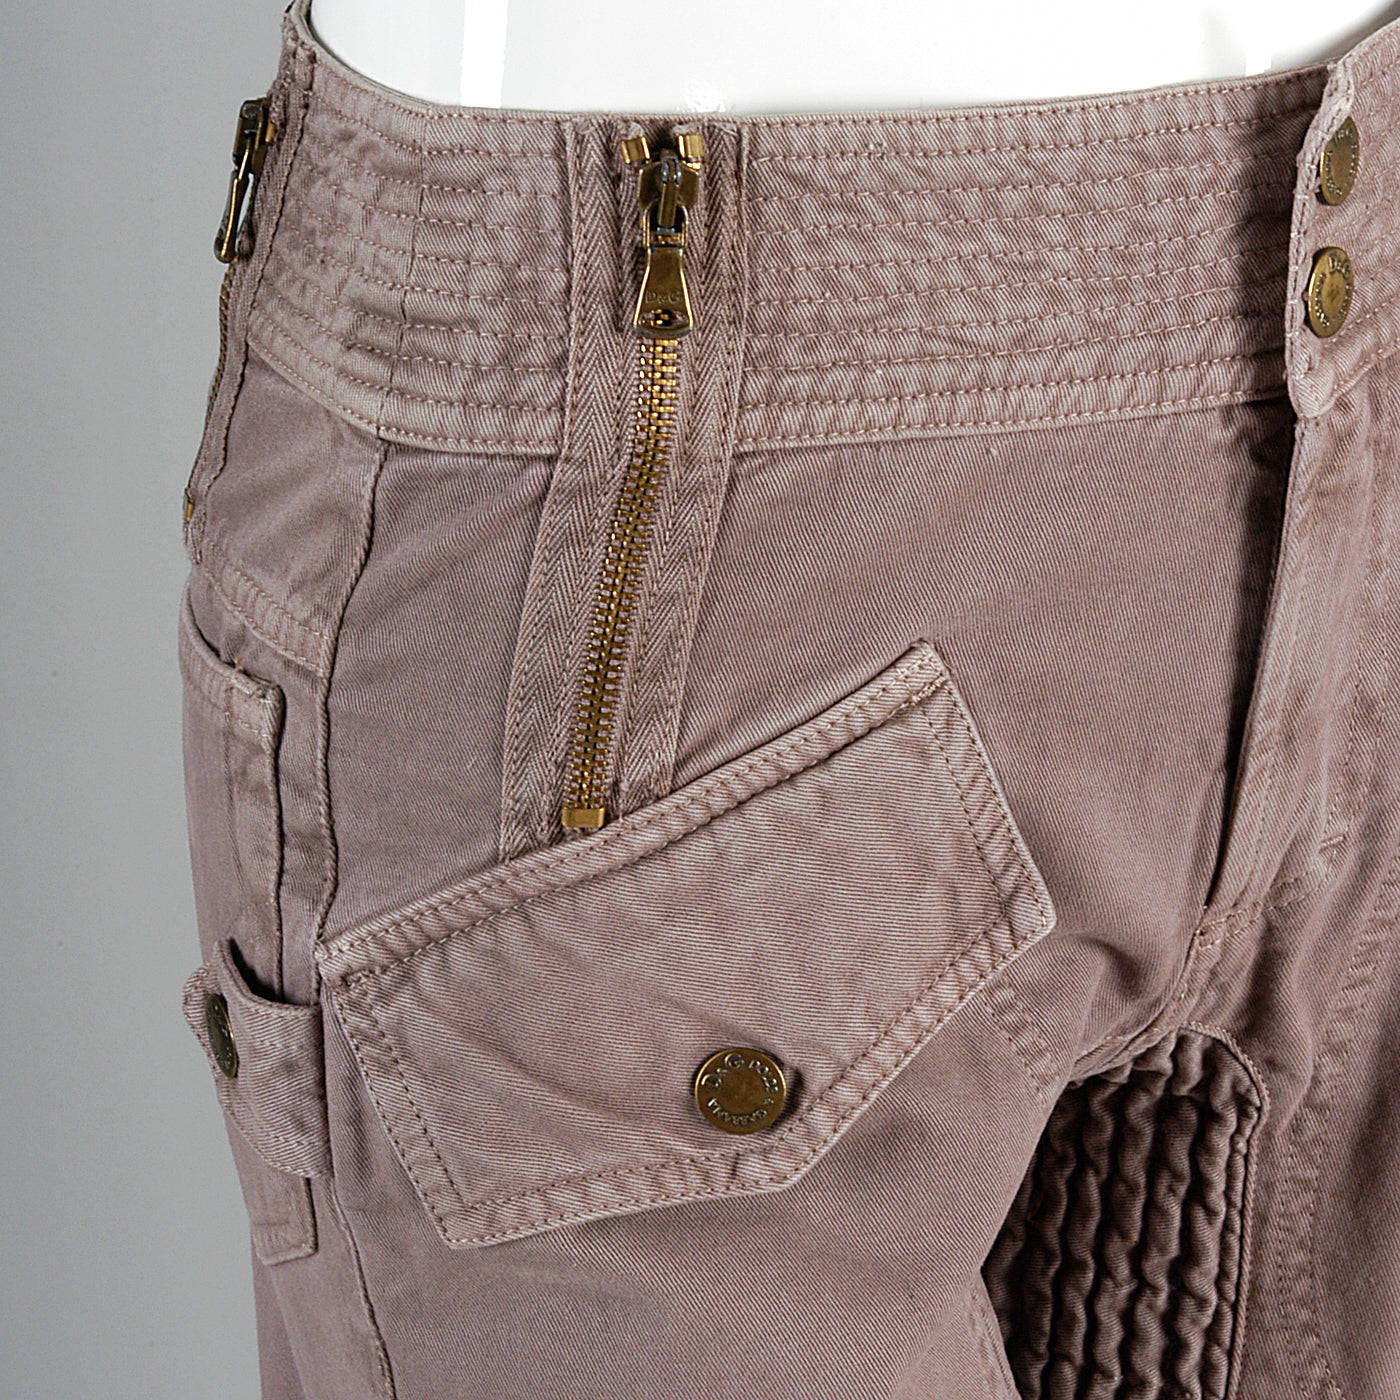 D&G Superior Denim by Dolce & Gabbana Taupe Twill Pants with Zippers Snaps and Smocked Thighs